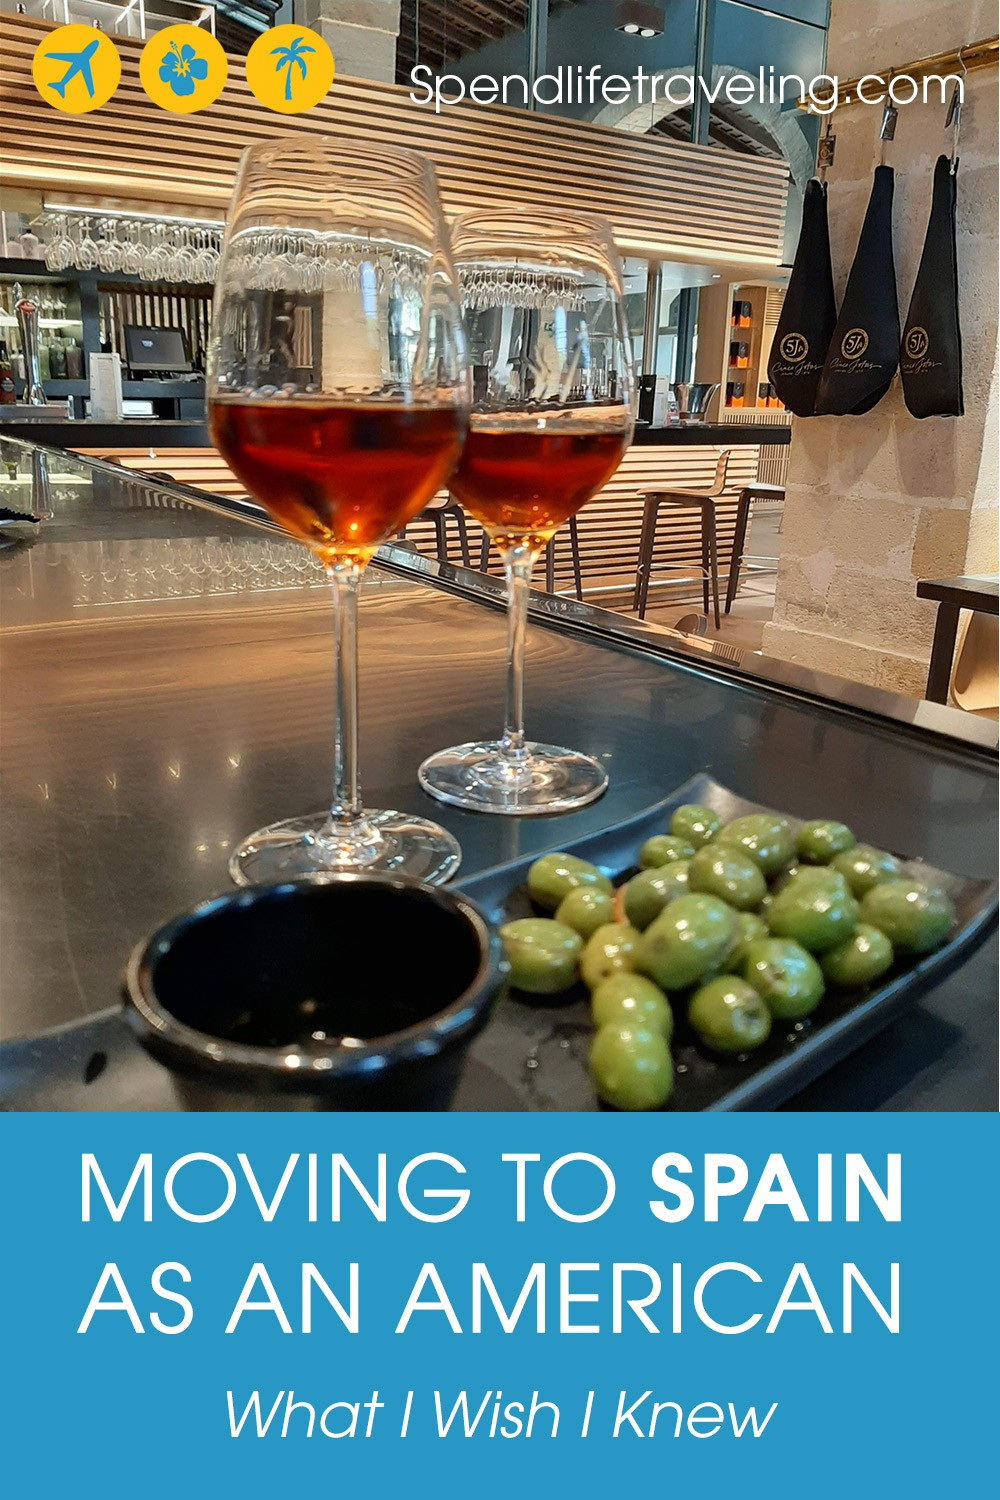 These are the things I wish I knew before moving to Spain from the US. #movingtoSpain